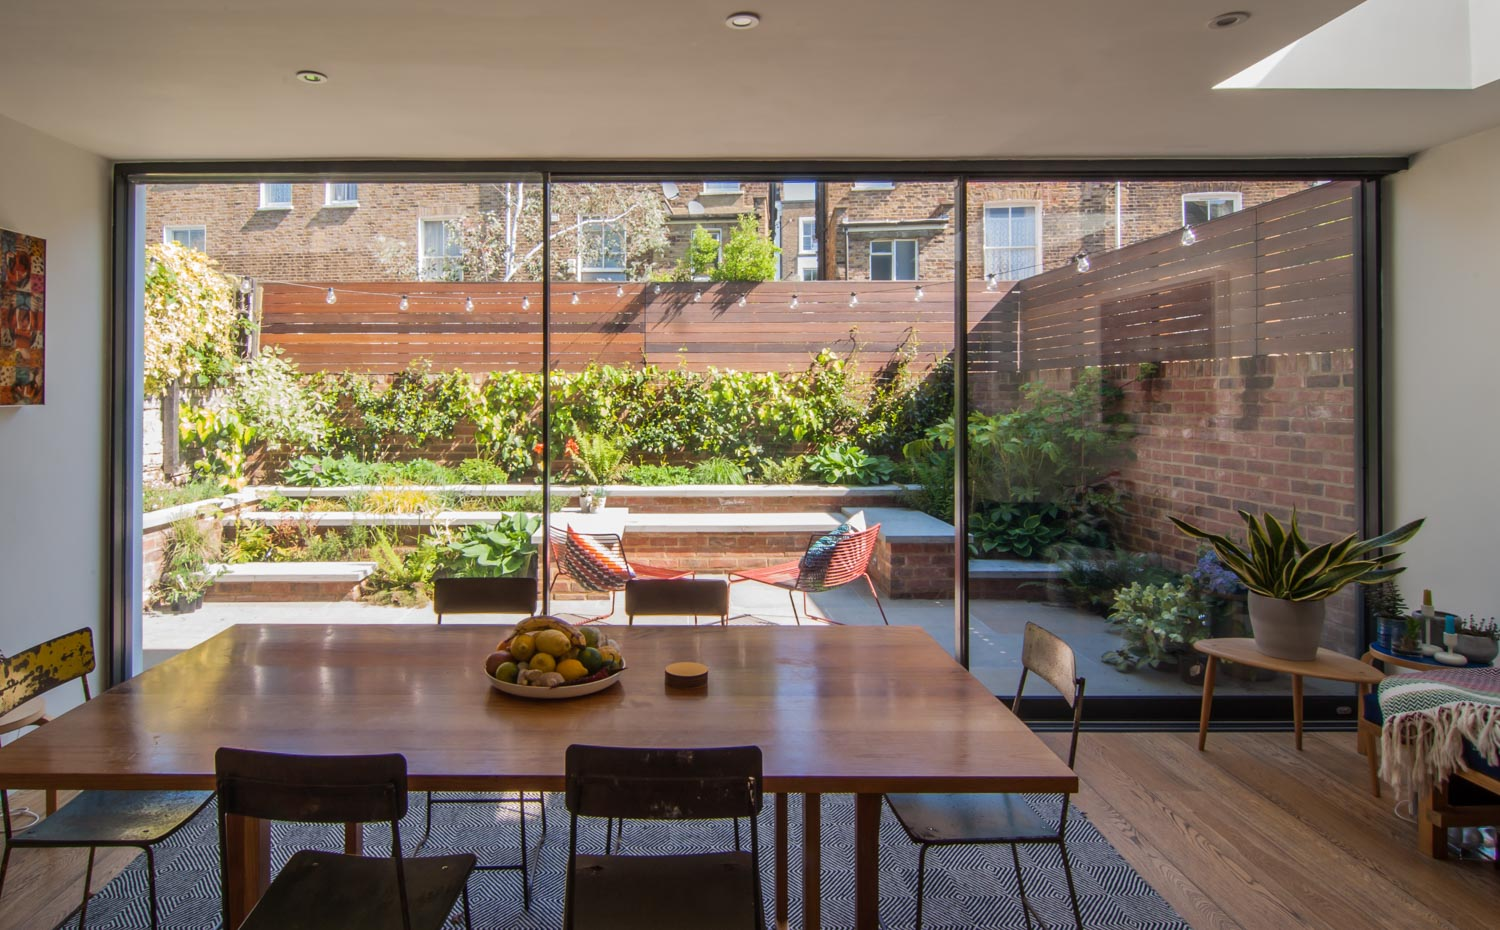 Sun filled garden patio as a beautiful backdrop of the dining area.